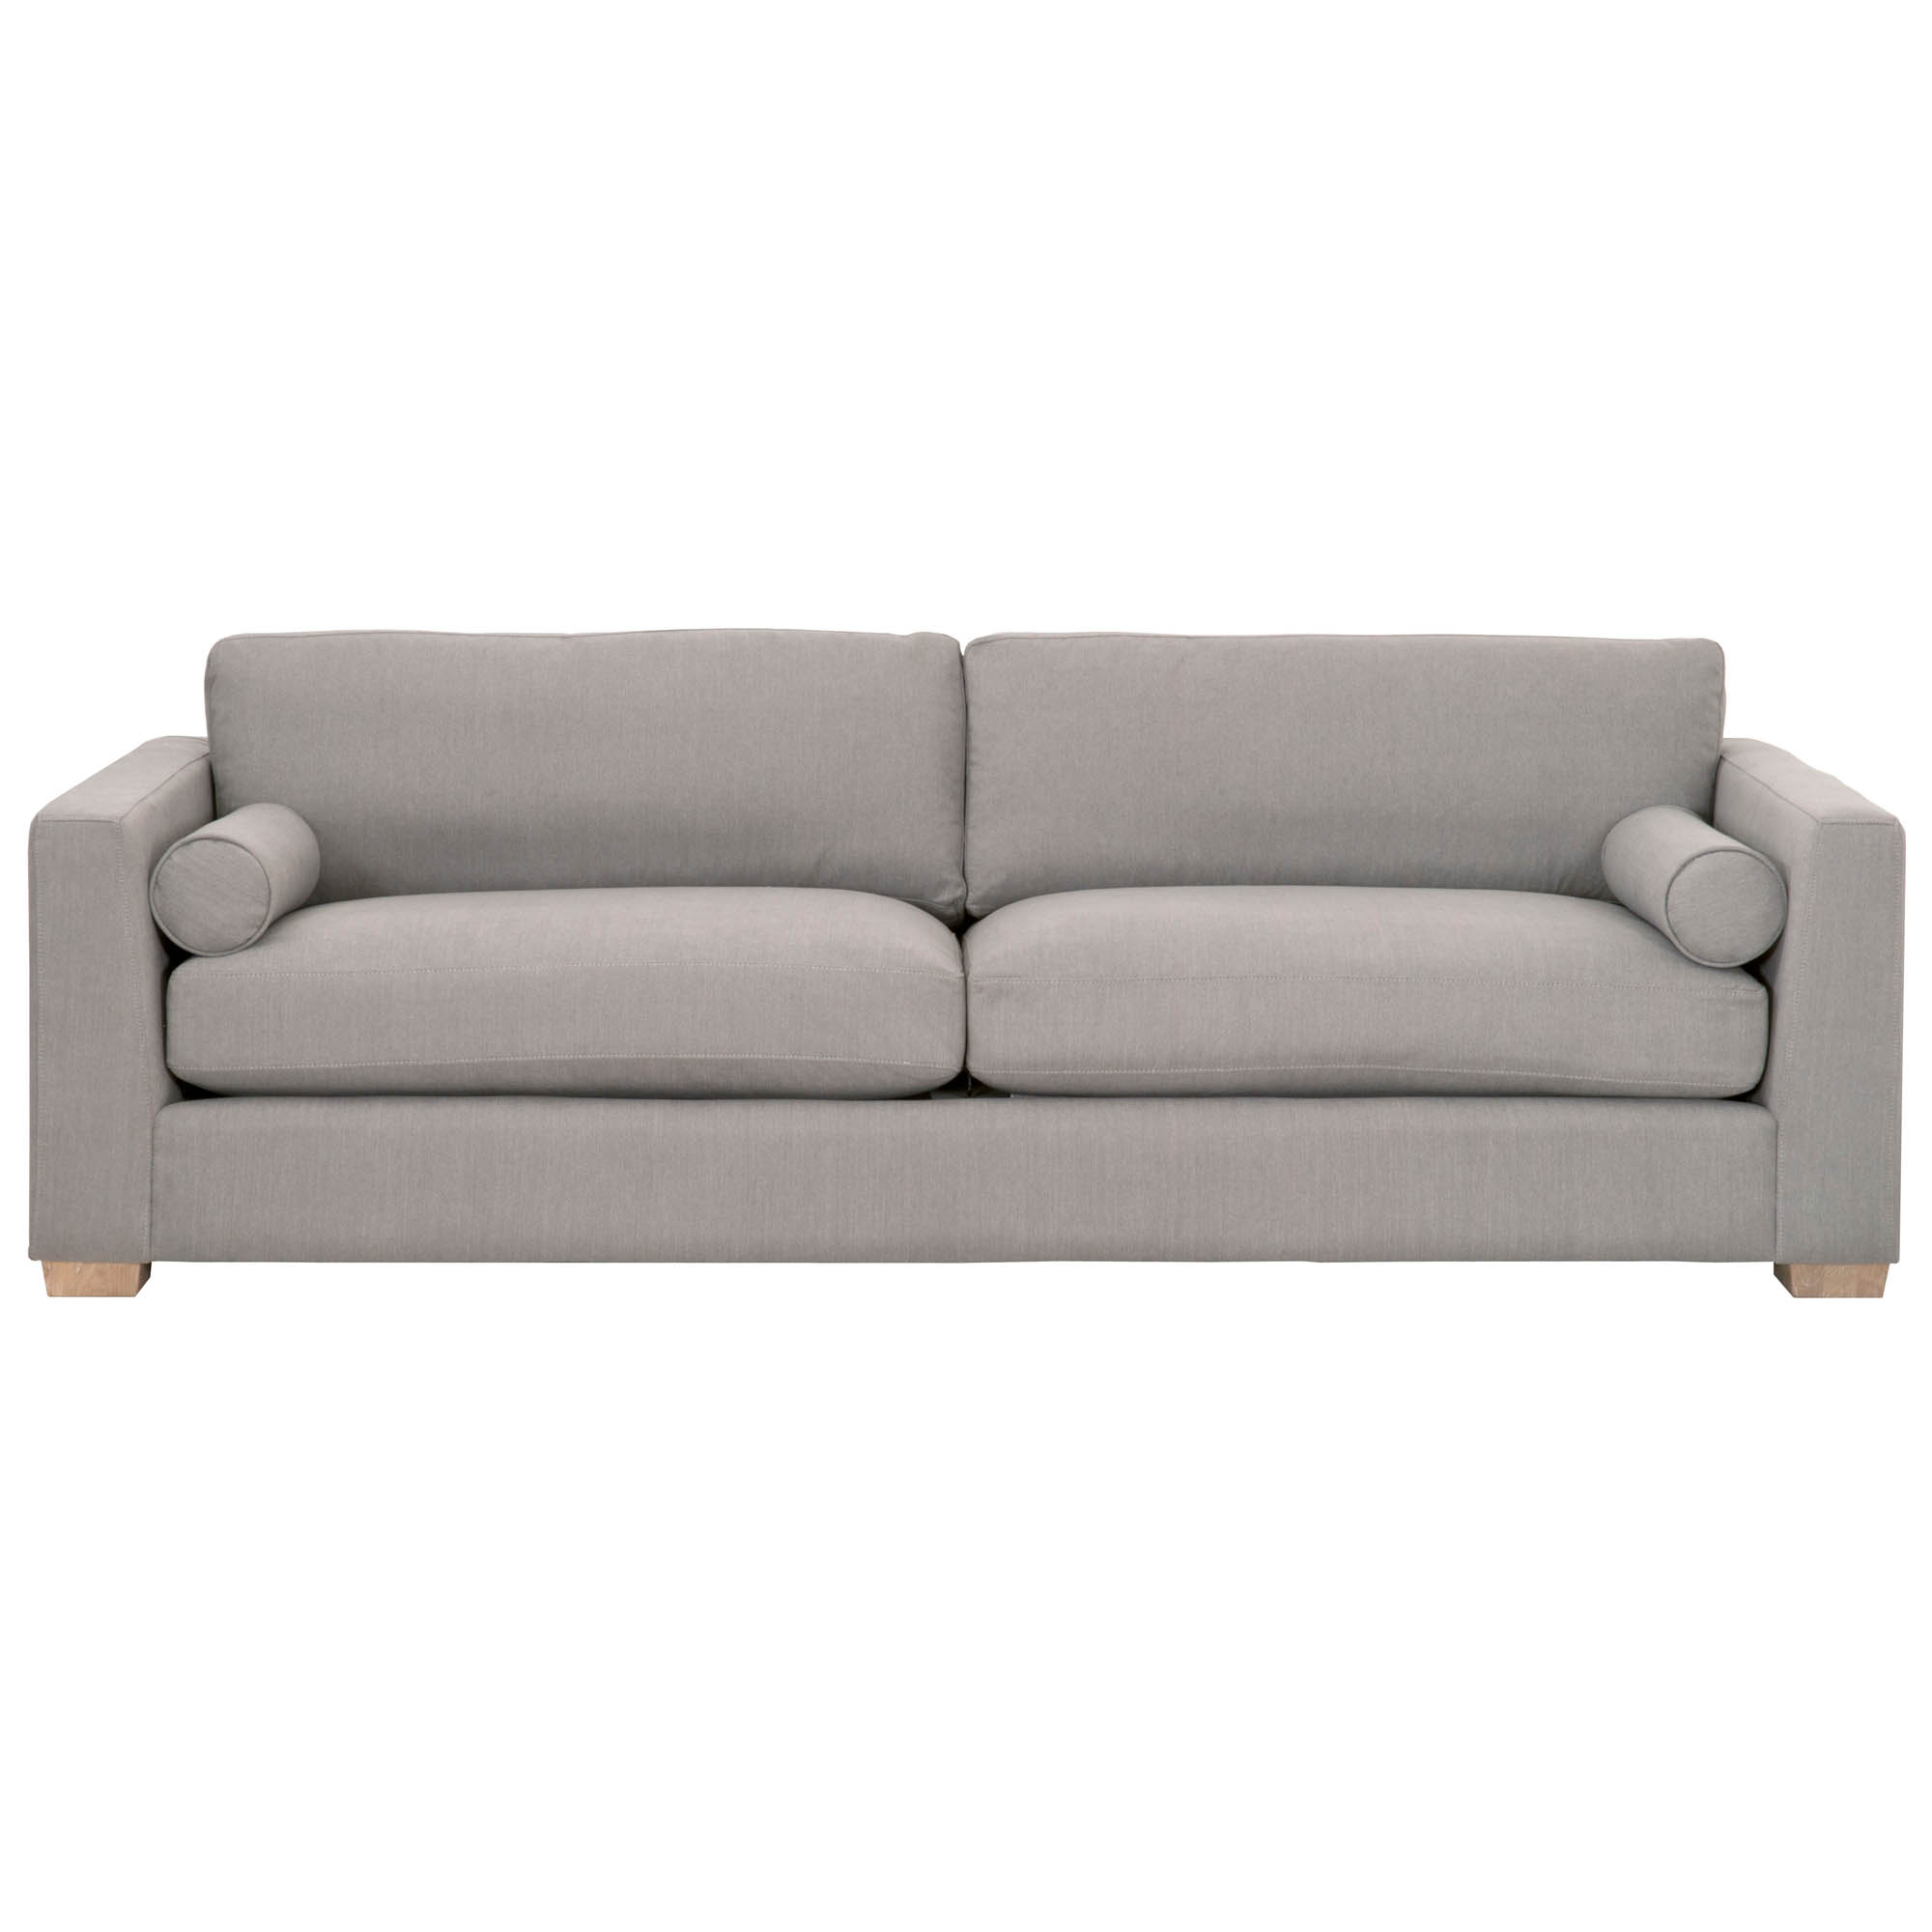 "Hayden 95"" Taper Arm Sofa For Liv Arm Sofa Chairs (View 15 of 25)"